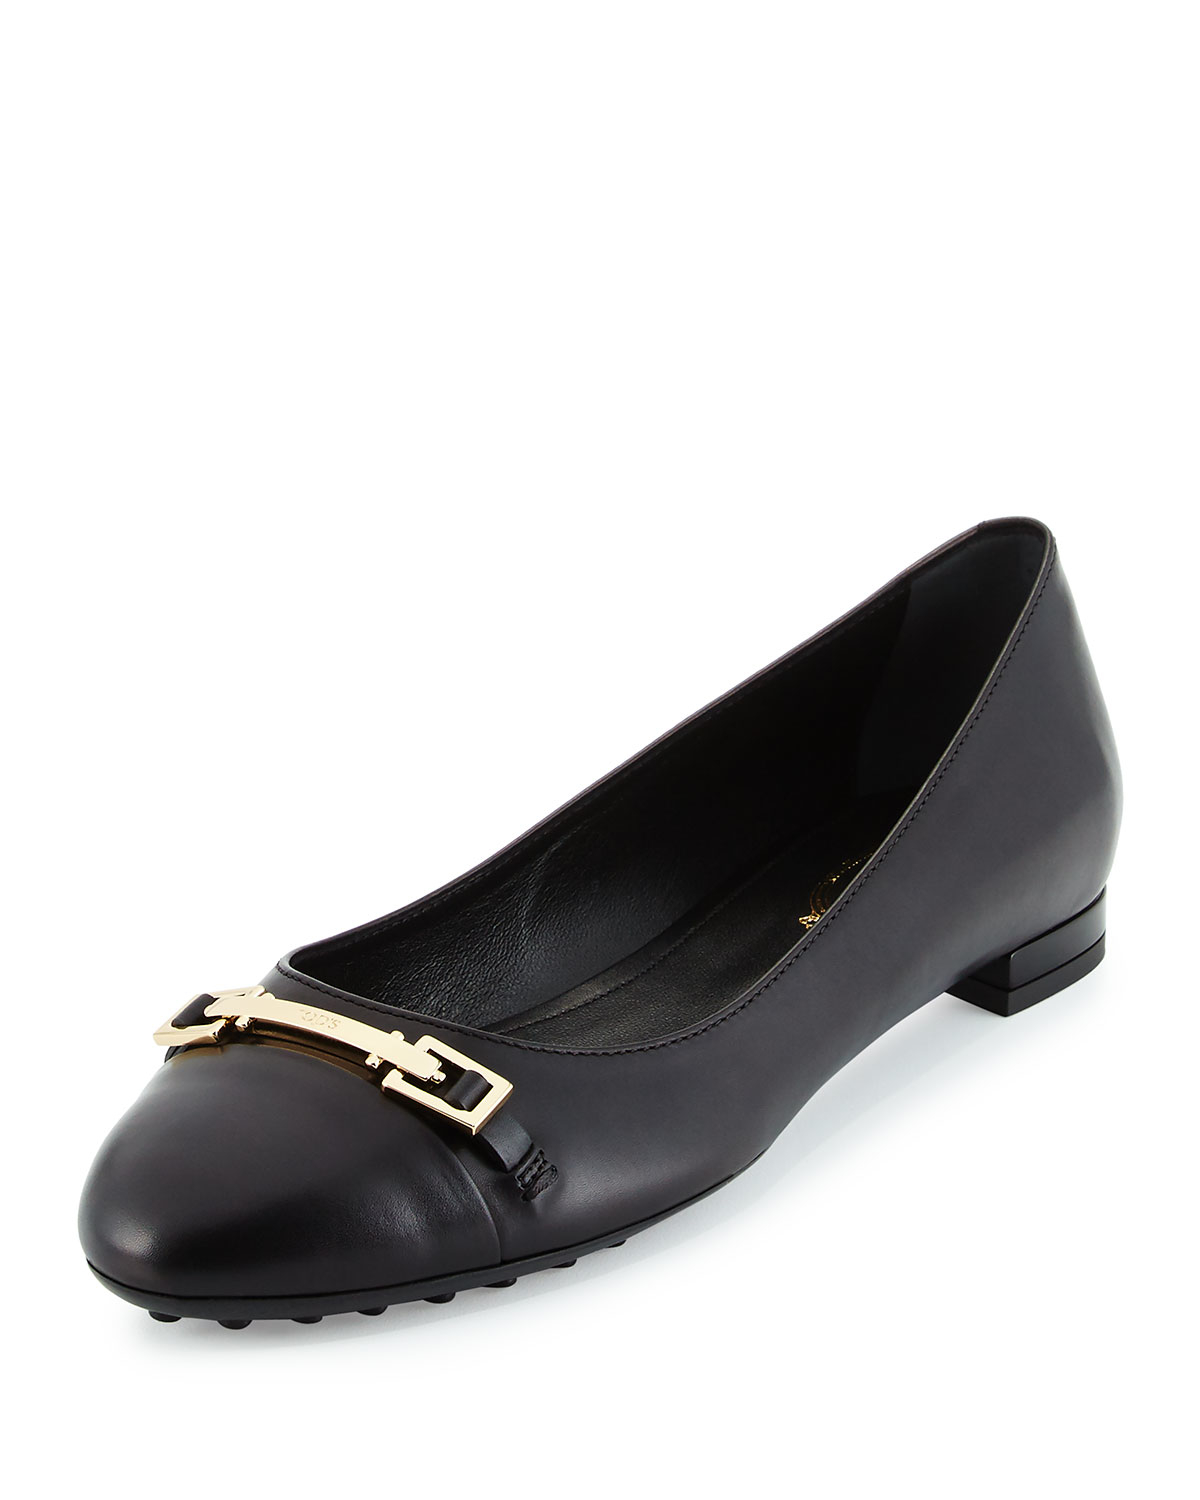 Tod's Leather Ballet Flats YfaCct3vC